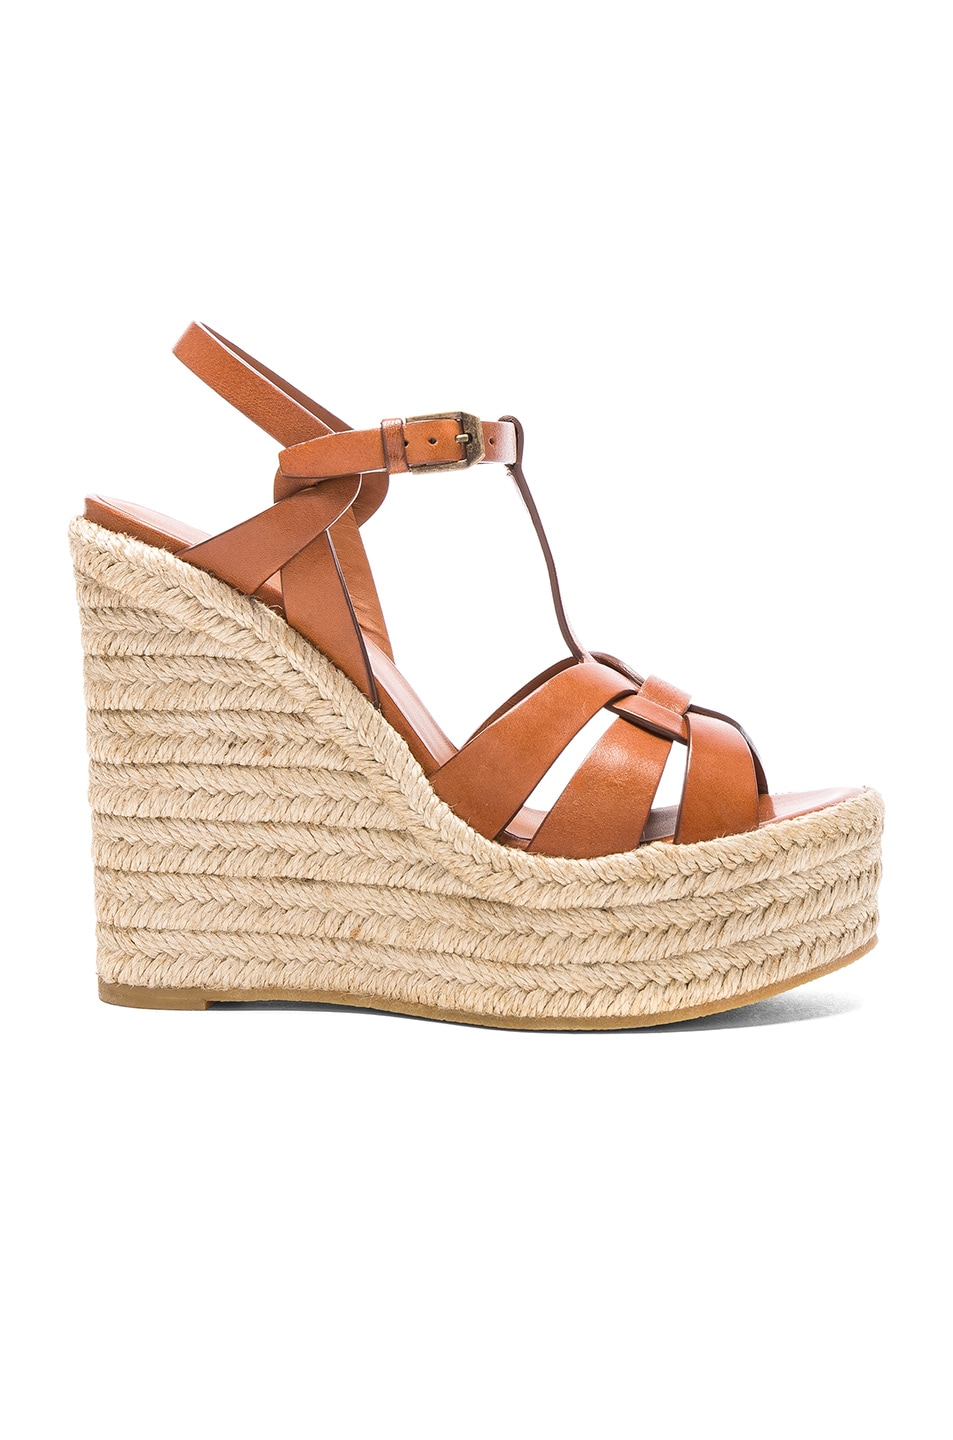 Image 1 of Saint Laurent Leather Espadrille Wedges in Amber